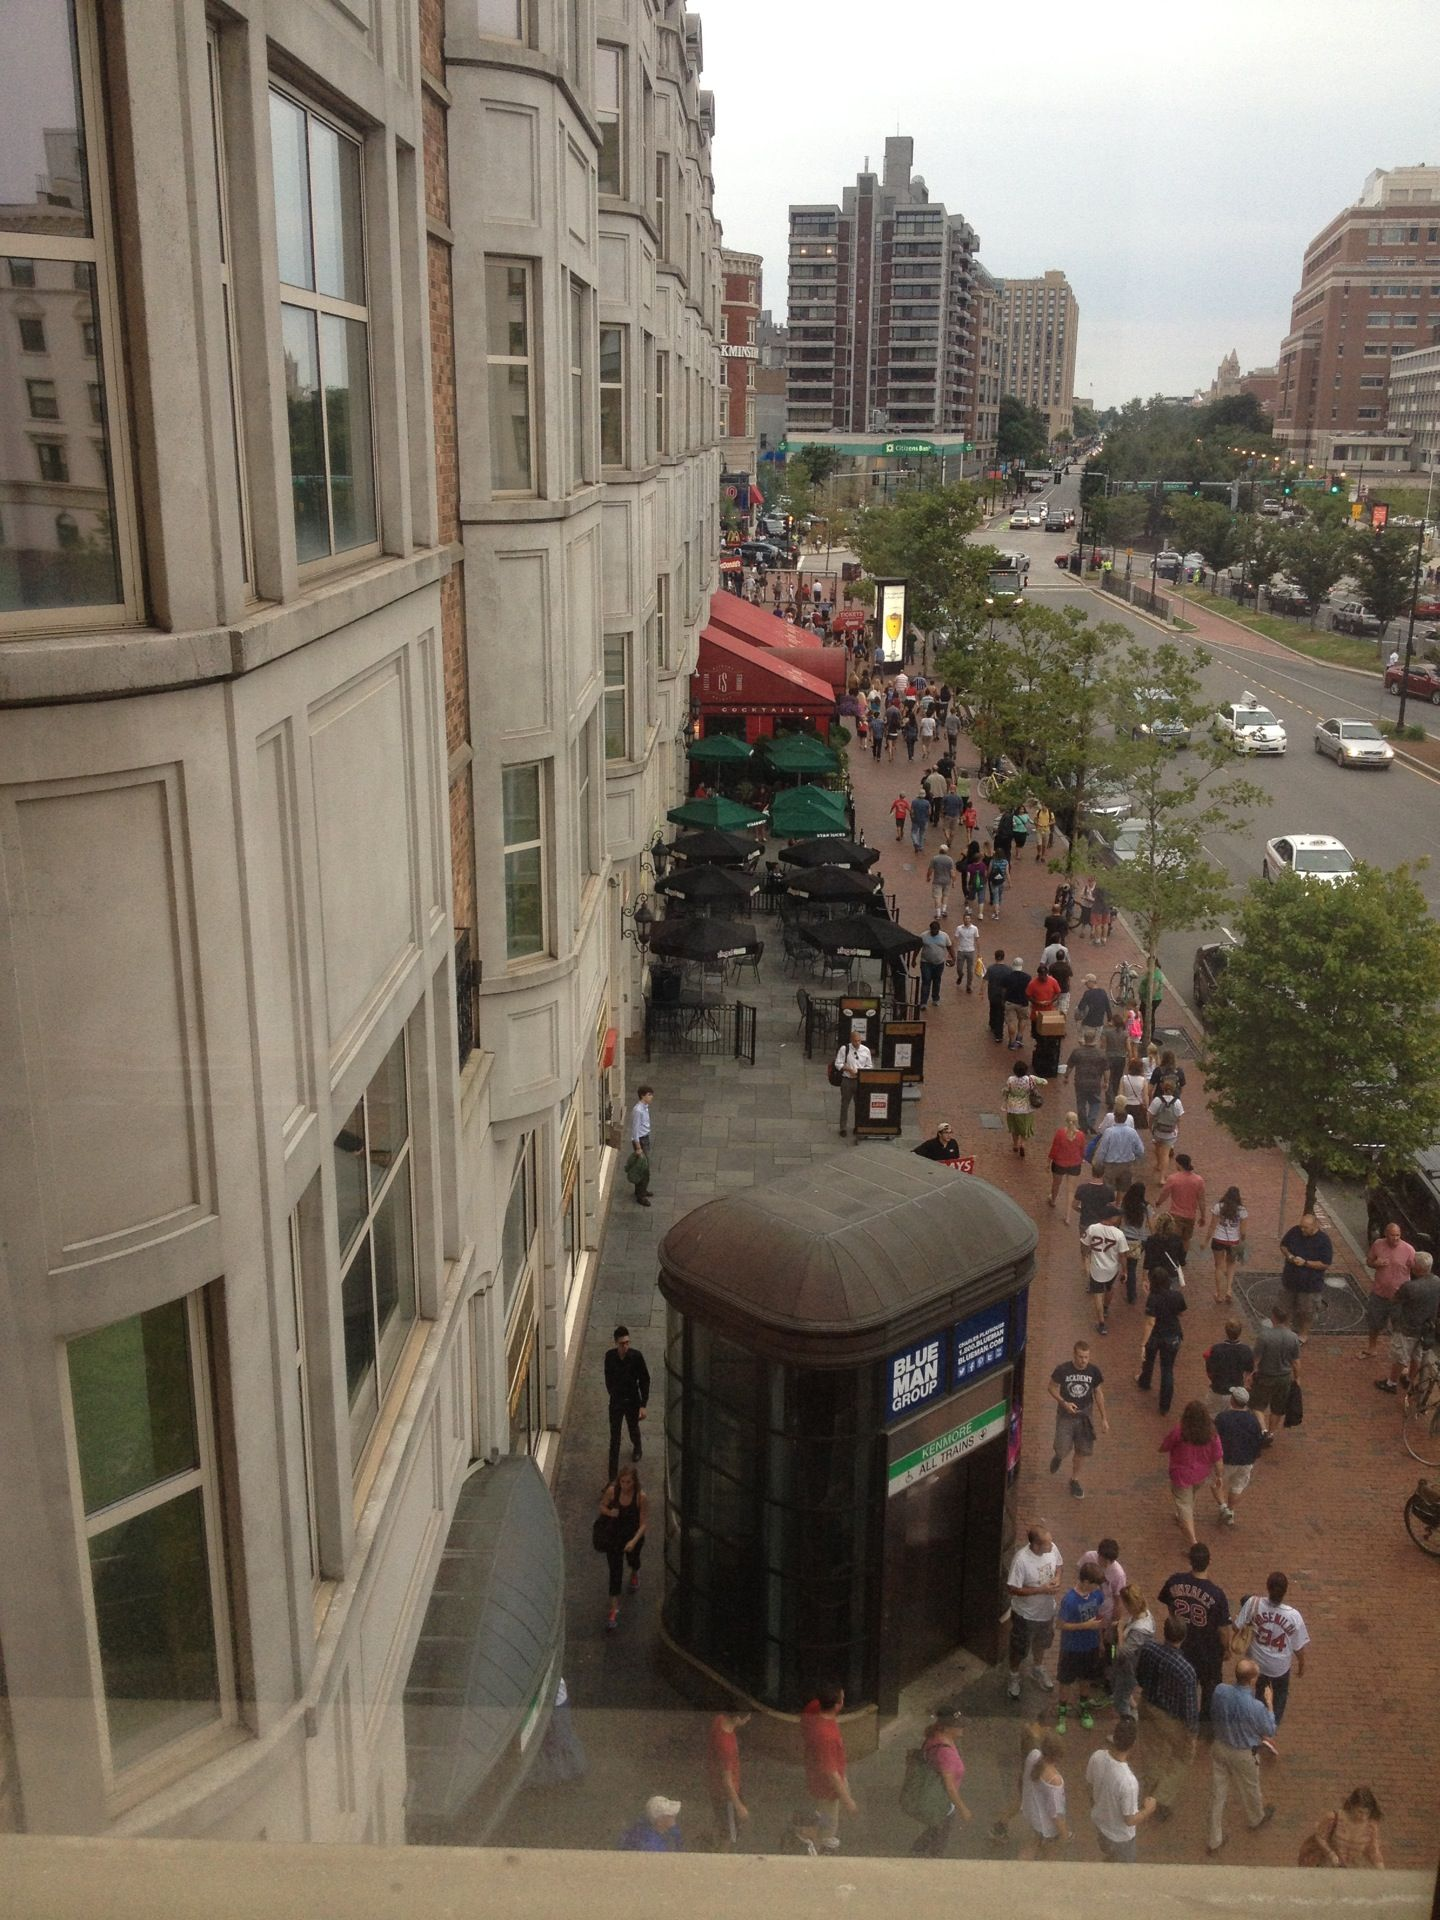 Hotel Commonwealth With Views Of Kenmore Square And Fenway This Roomy Boutique Stay Is Perfect For Redsox Fans